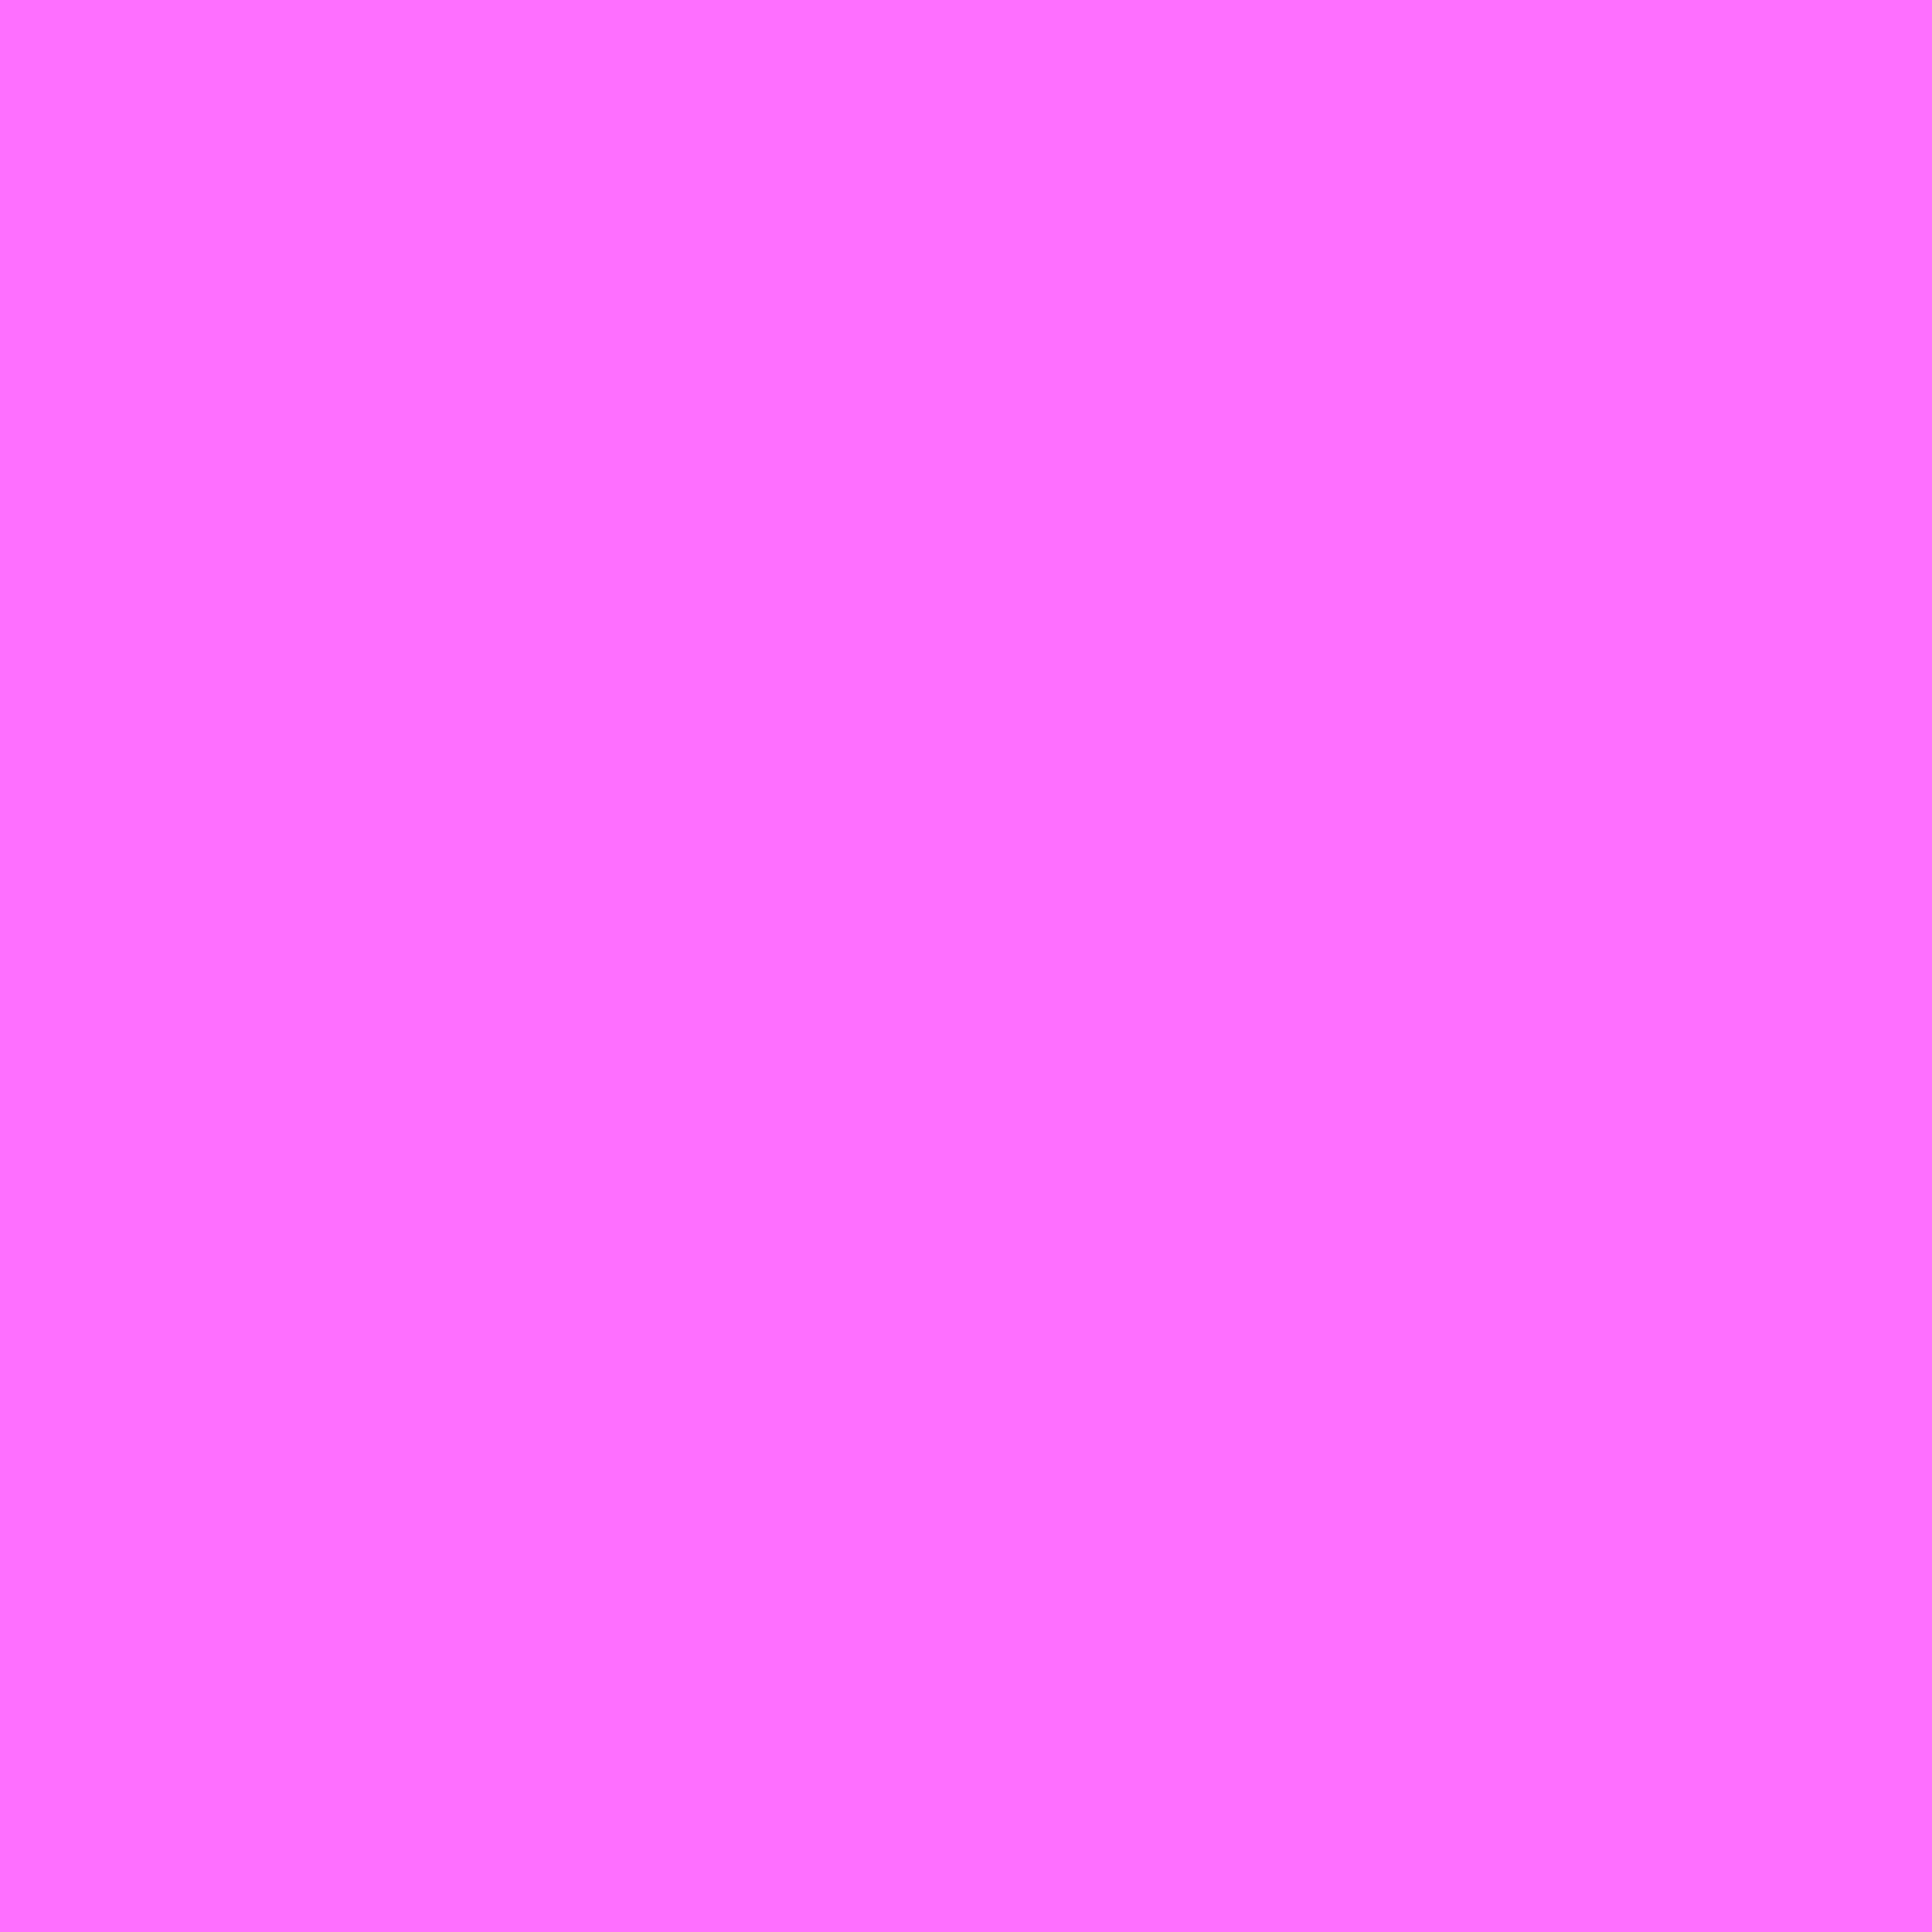 2048x2048 Shocking Pink Crayola Solid Color Background